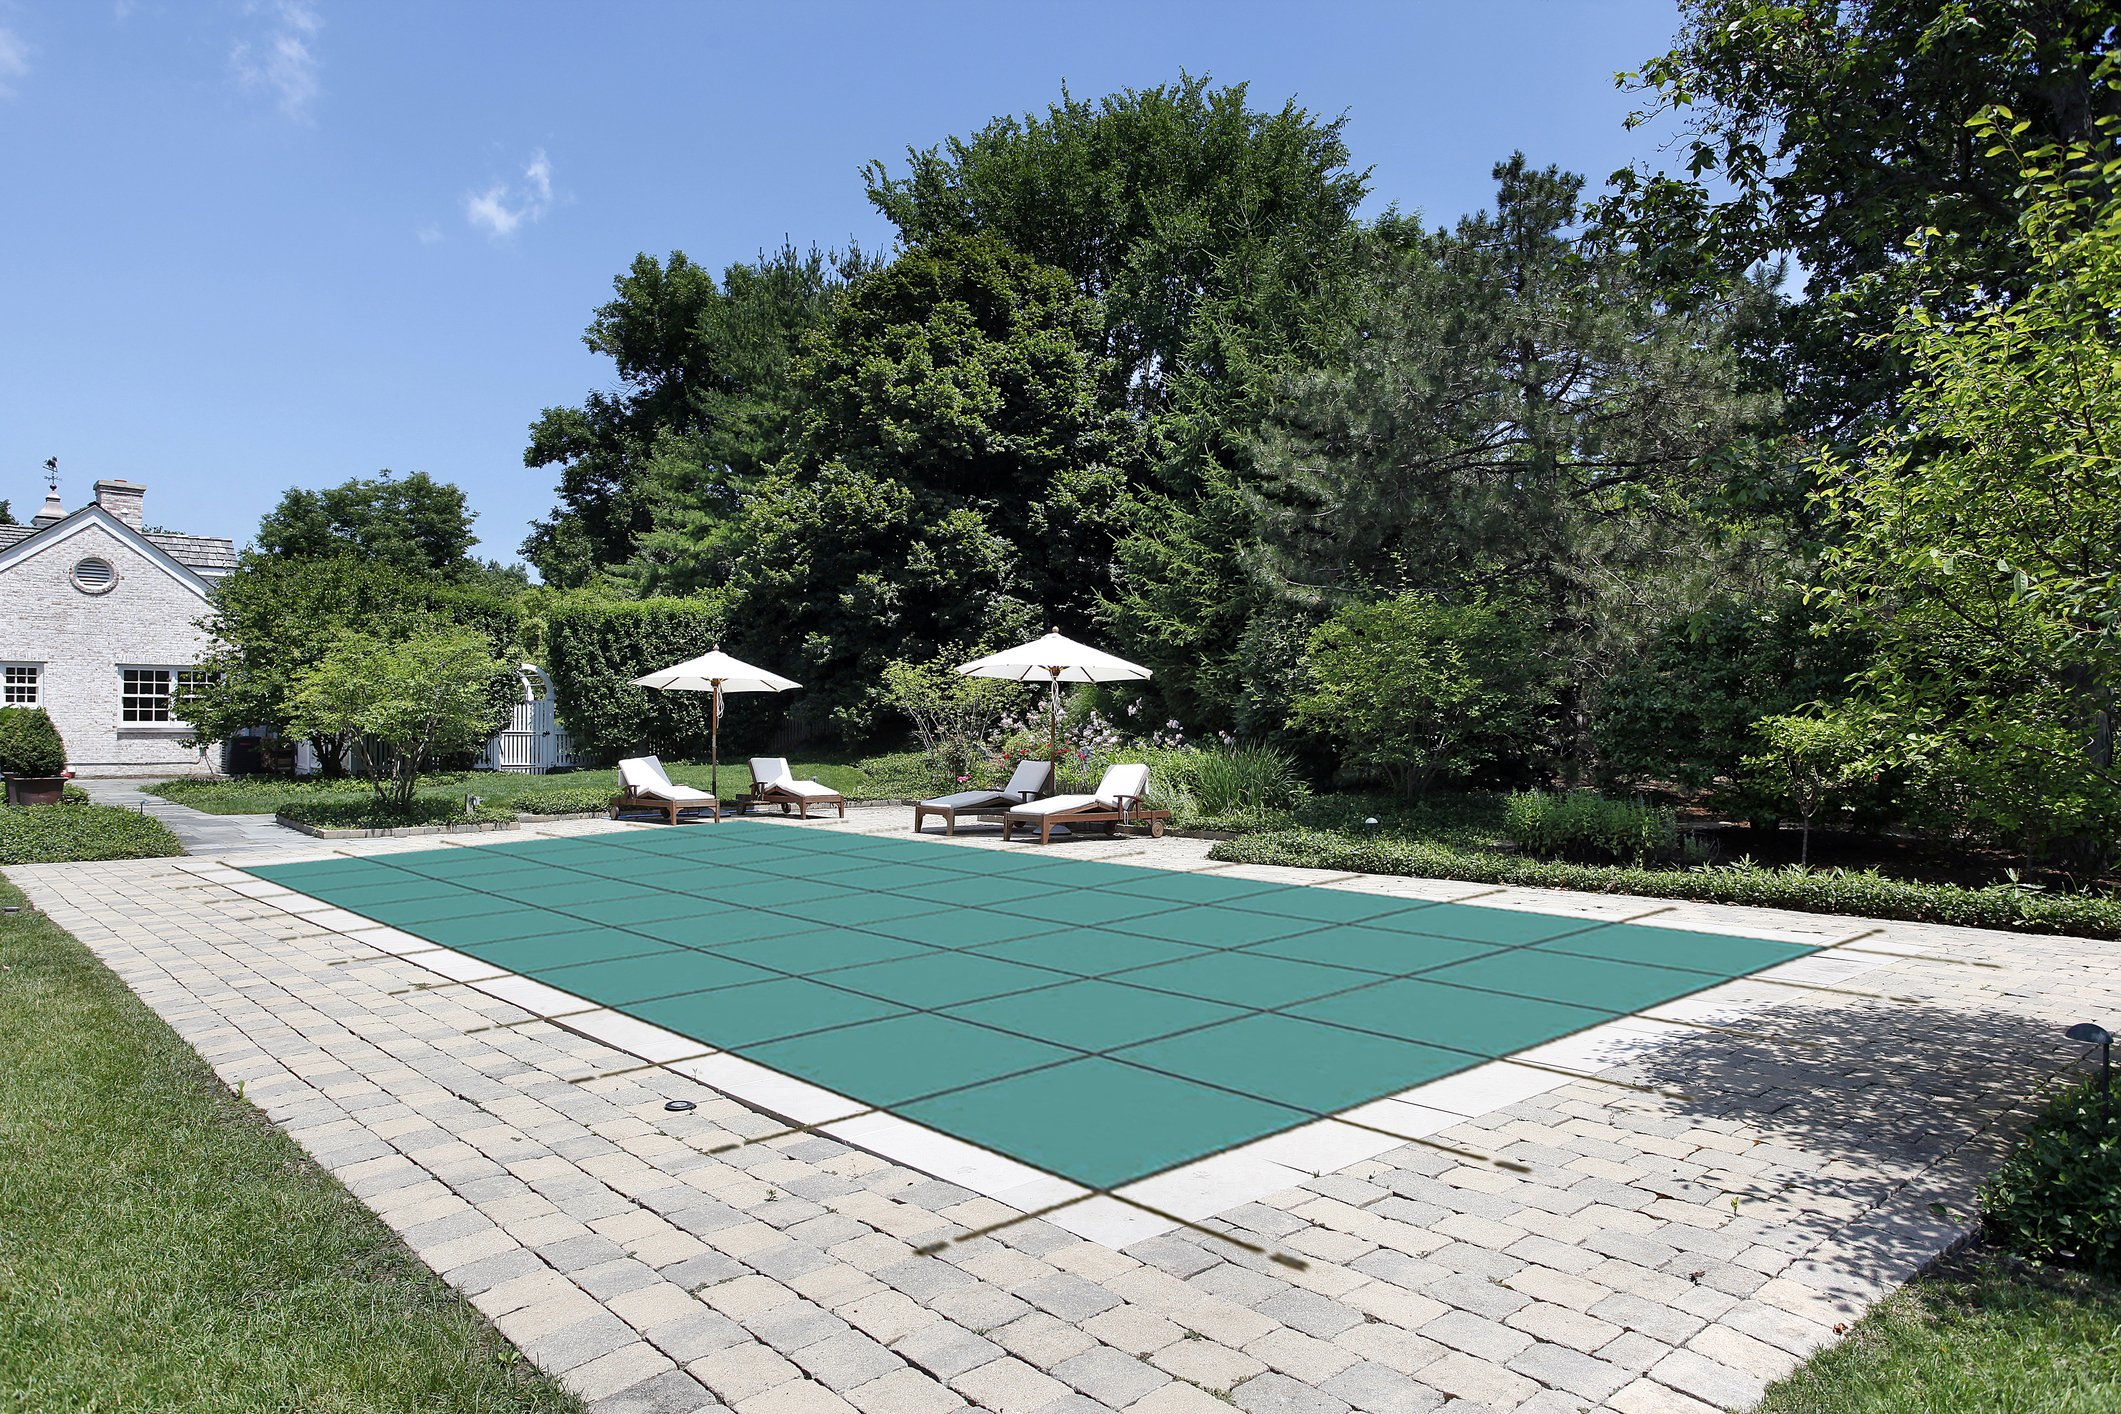 Pool Safety Cover for a 16 x 36 Pool, Green Mesh